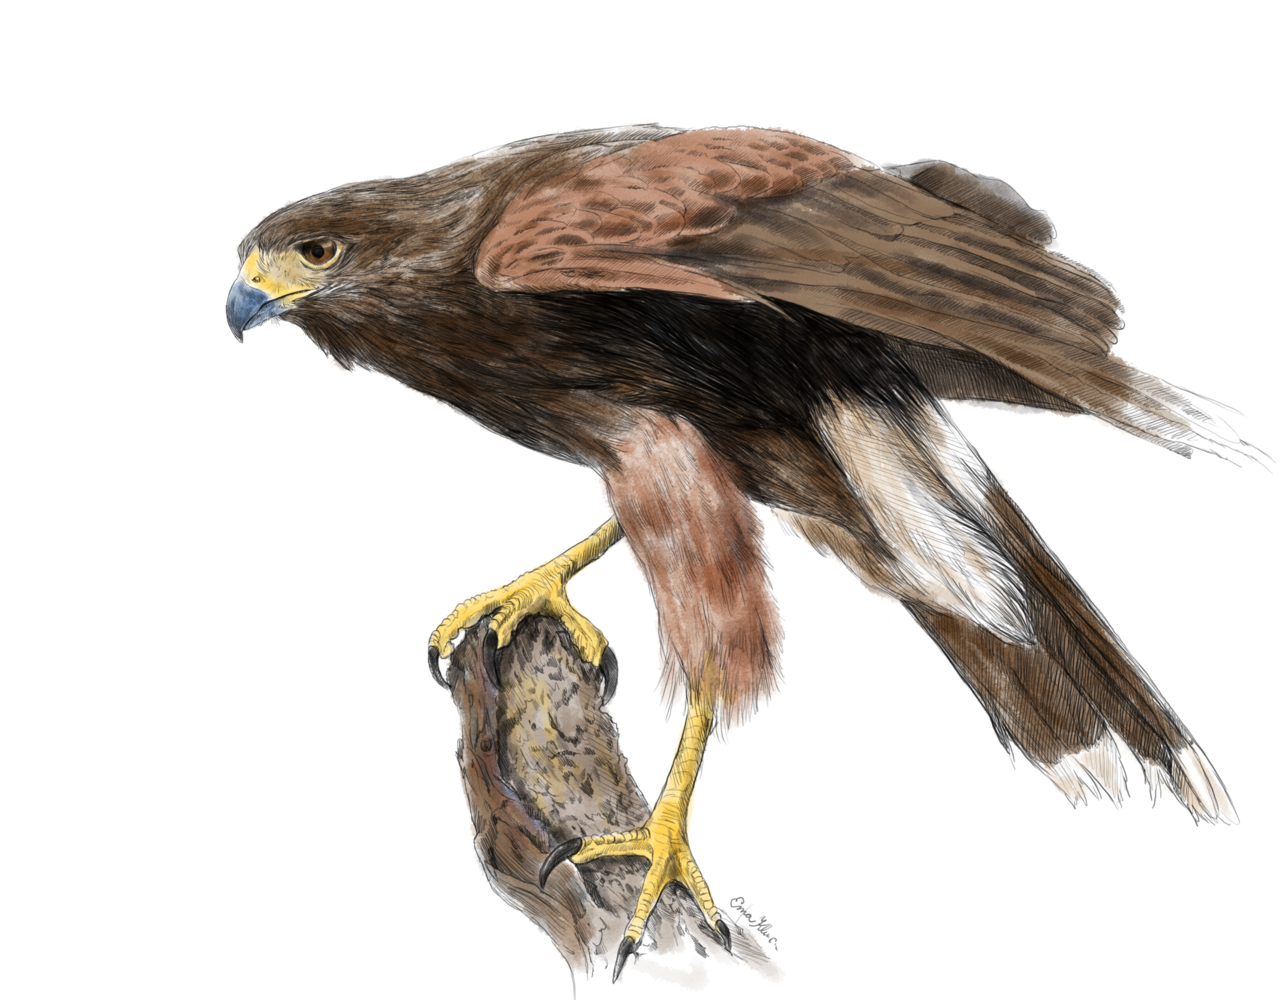 15-year-old prodigy girl draws amazingly well and trains falcons too